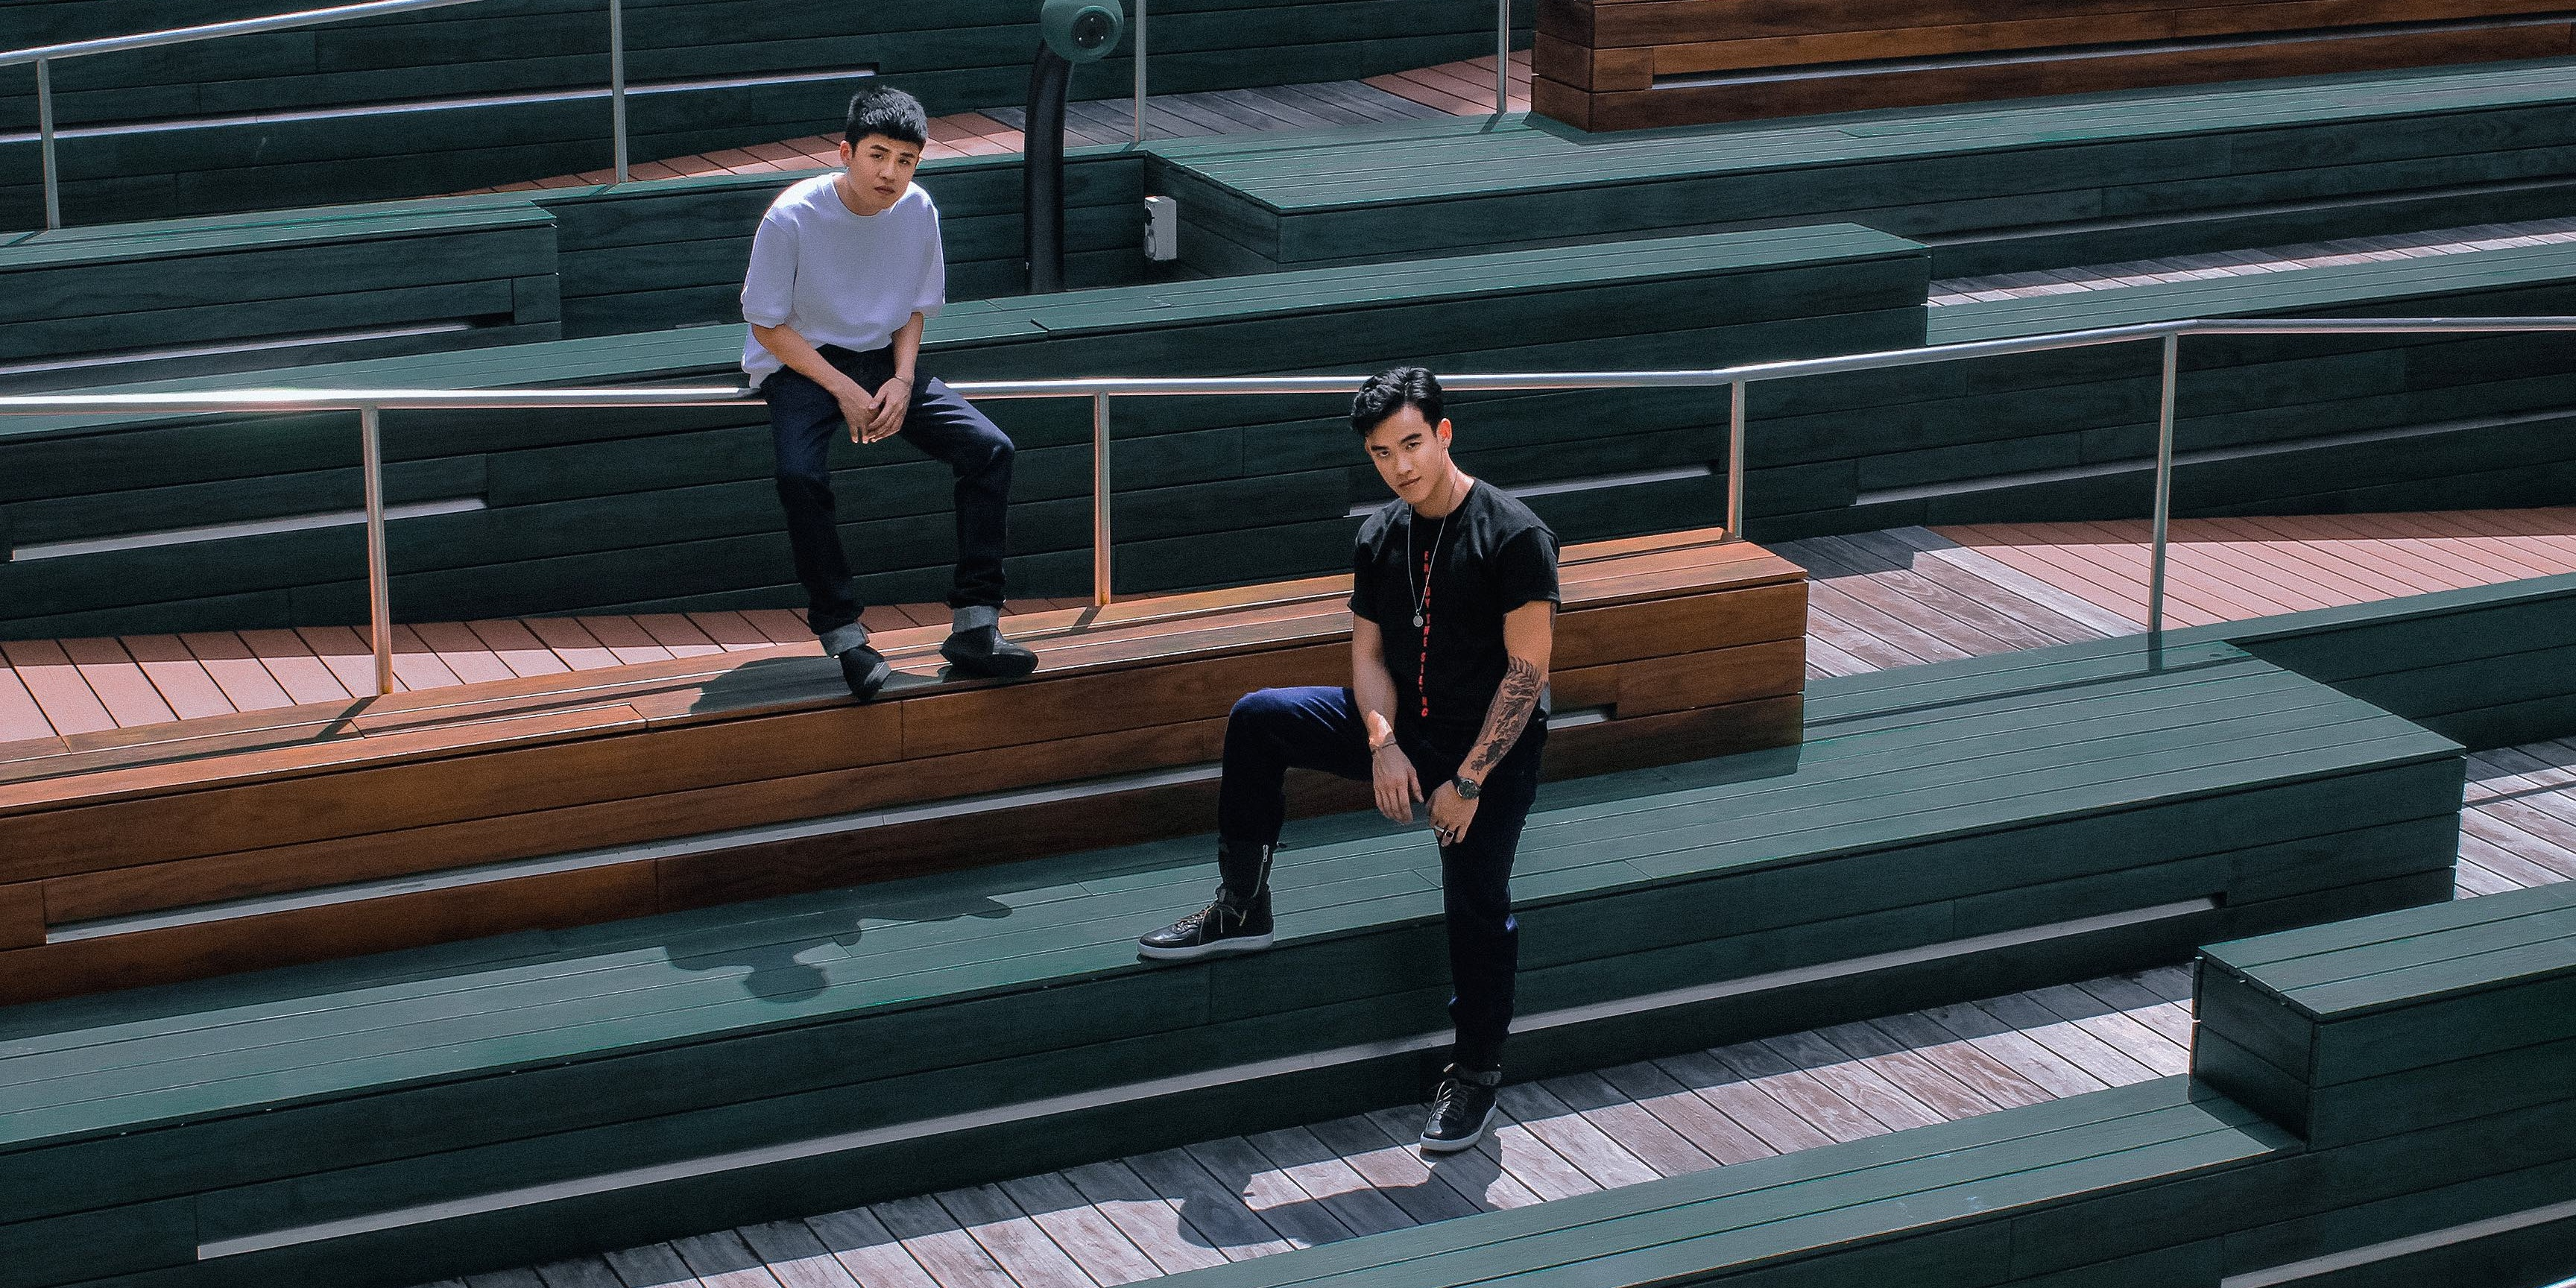 Gentle Bones and MYRNE talk B4NGER PROJECT, their joint album out today